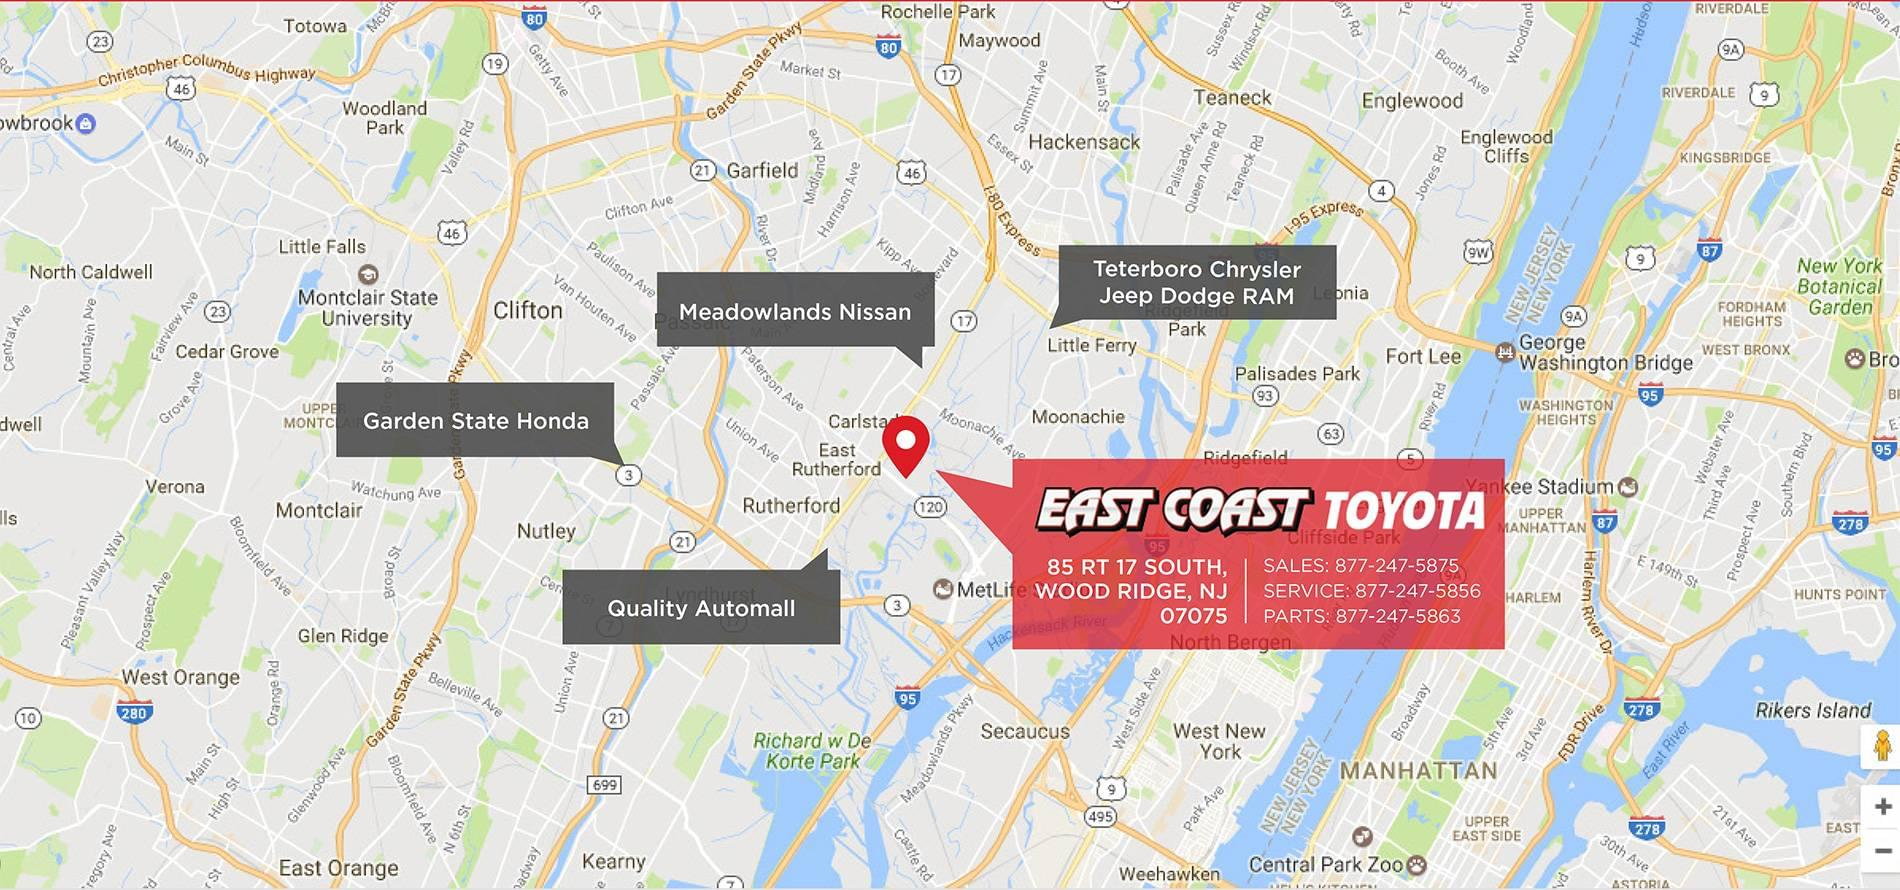 East Coast Toyota Conveniently Located Landing Page | East Coast ...